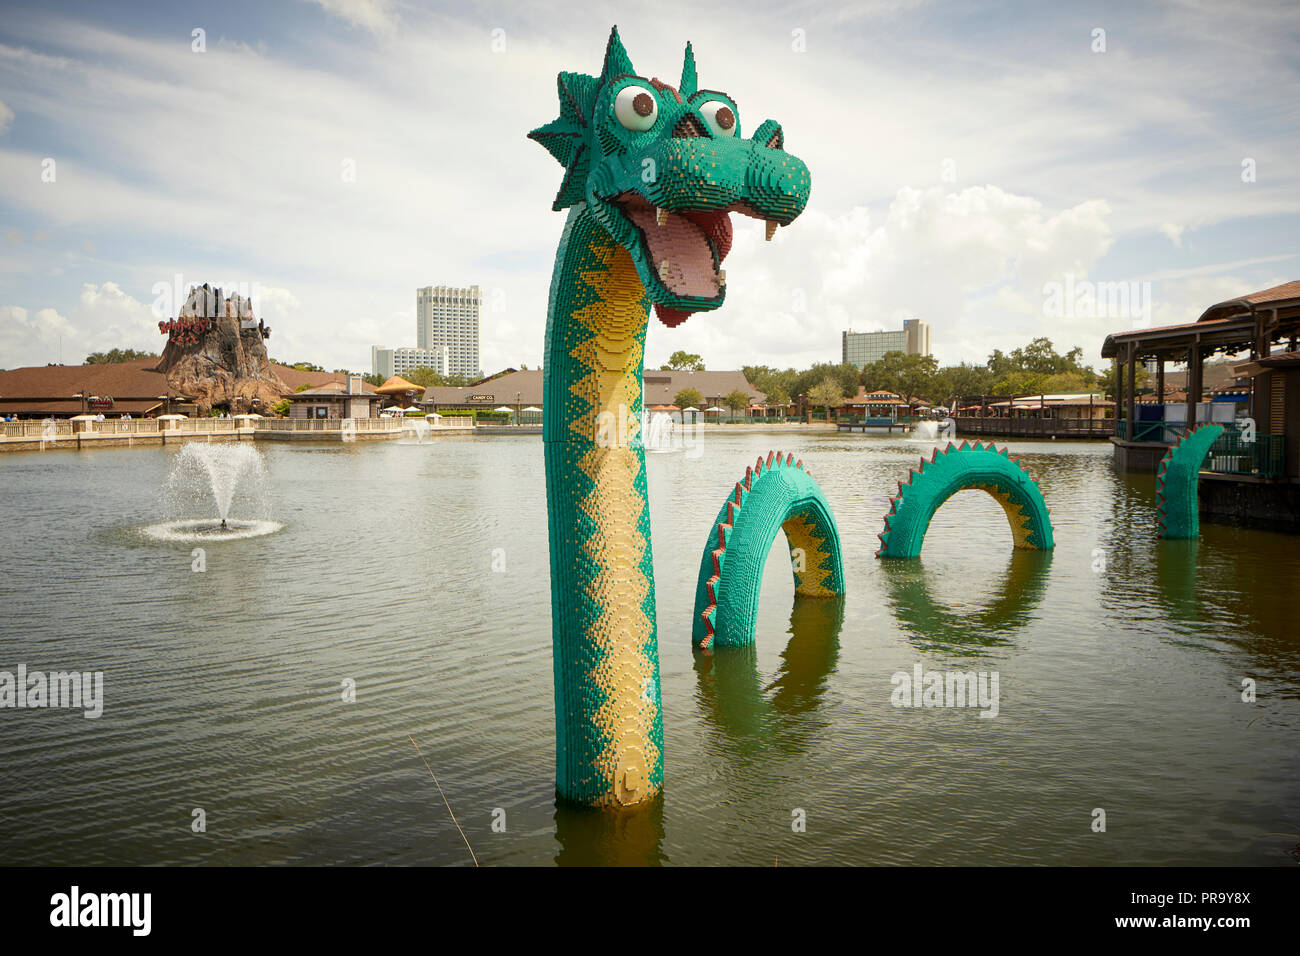 The Loch Ness Monster - Stock Image